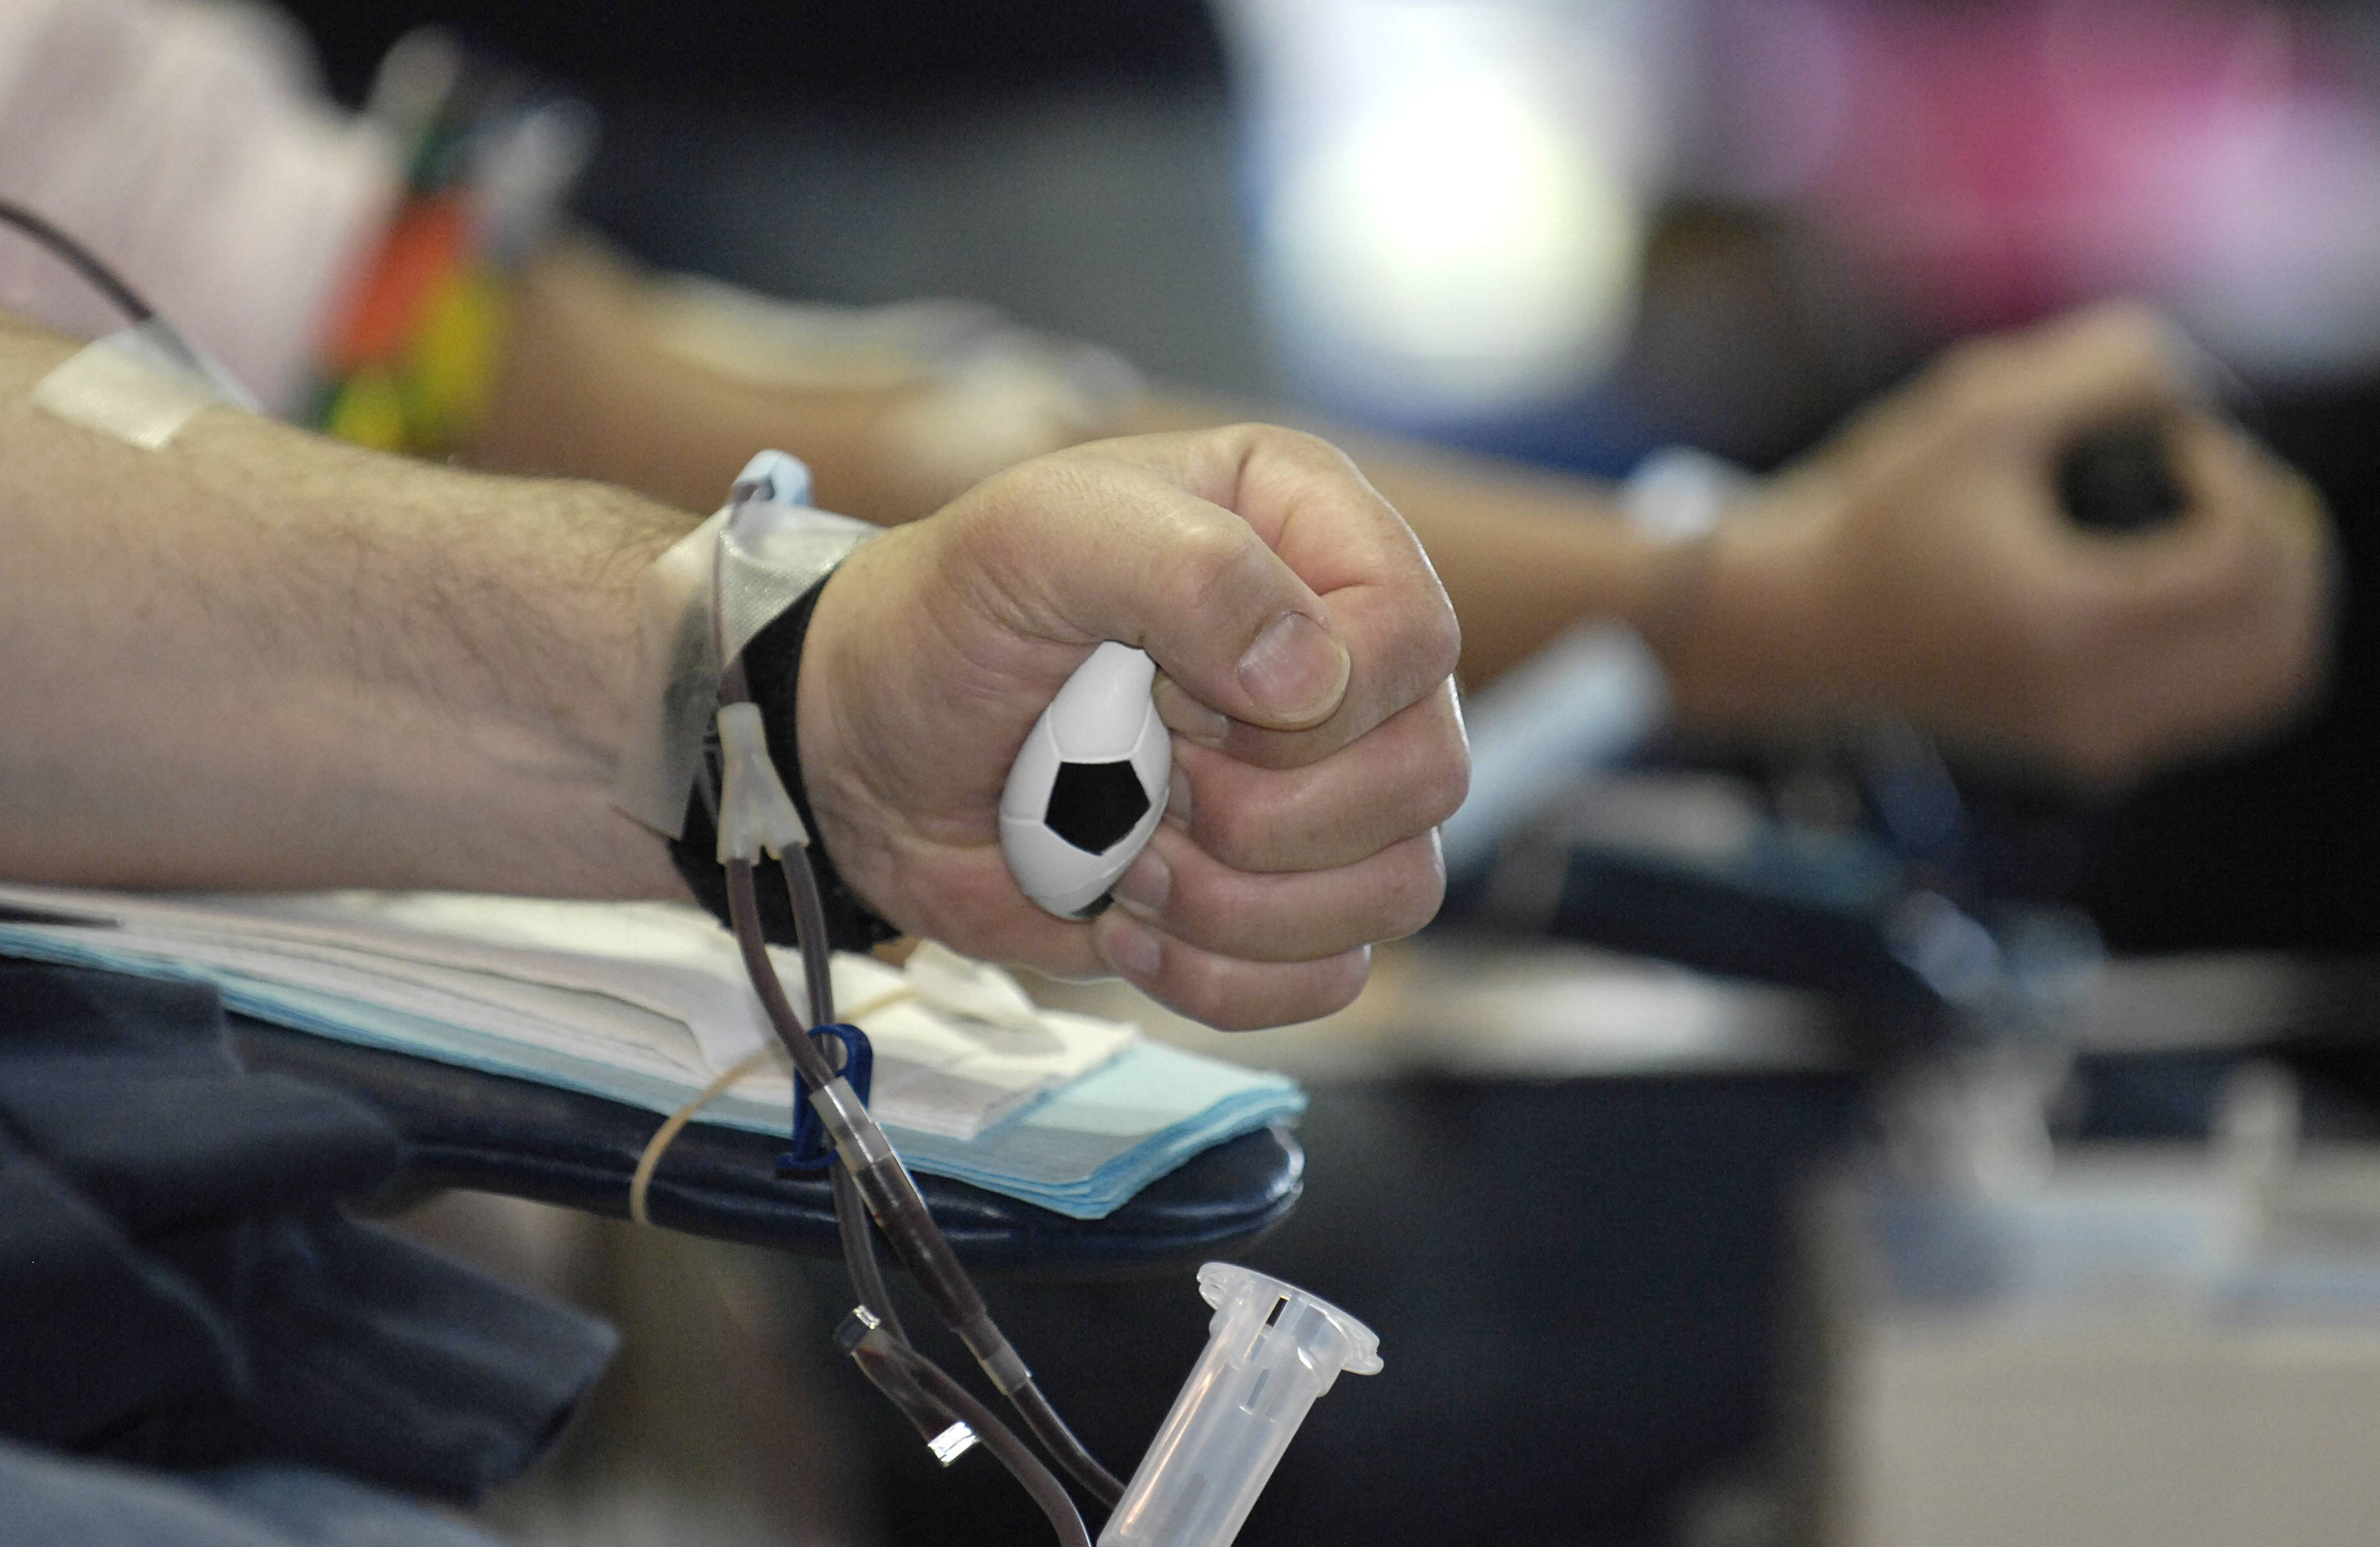 The Algonquin Area Public Library invites residents to sign up for a blood drive on Wednesday, Jan. 30. Every day, Heartland Blood Centers needs at least 600 donors to meet the demand from hospitals.